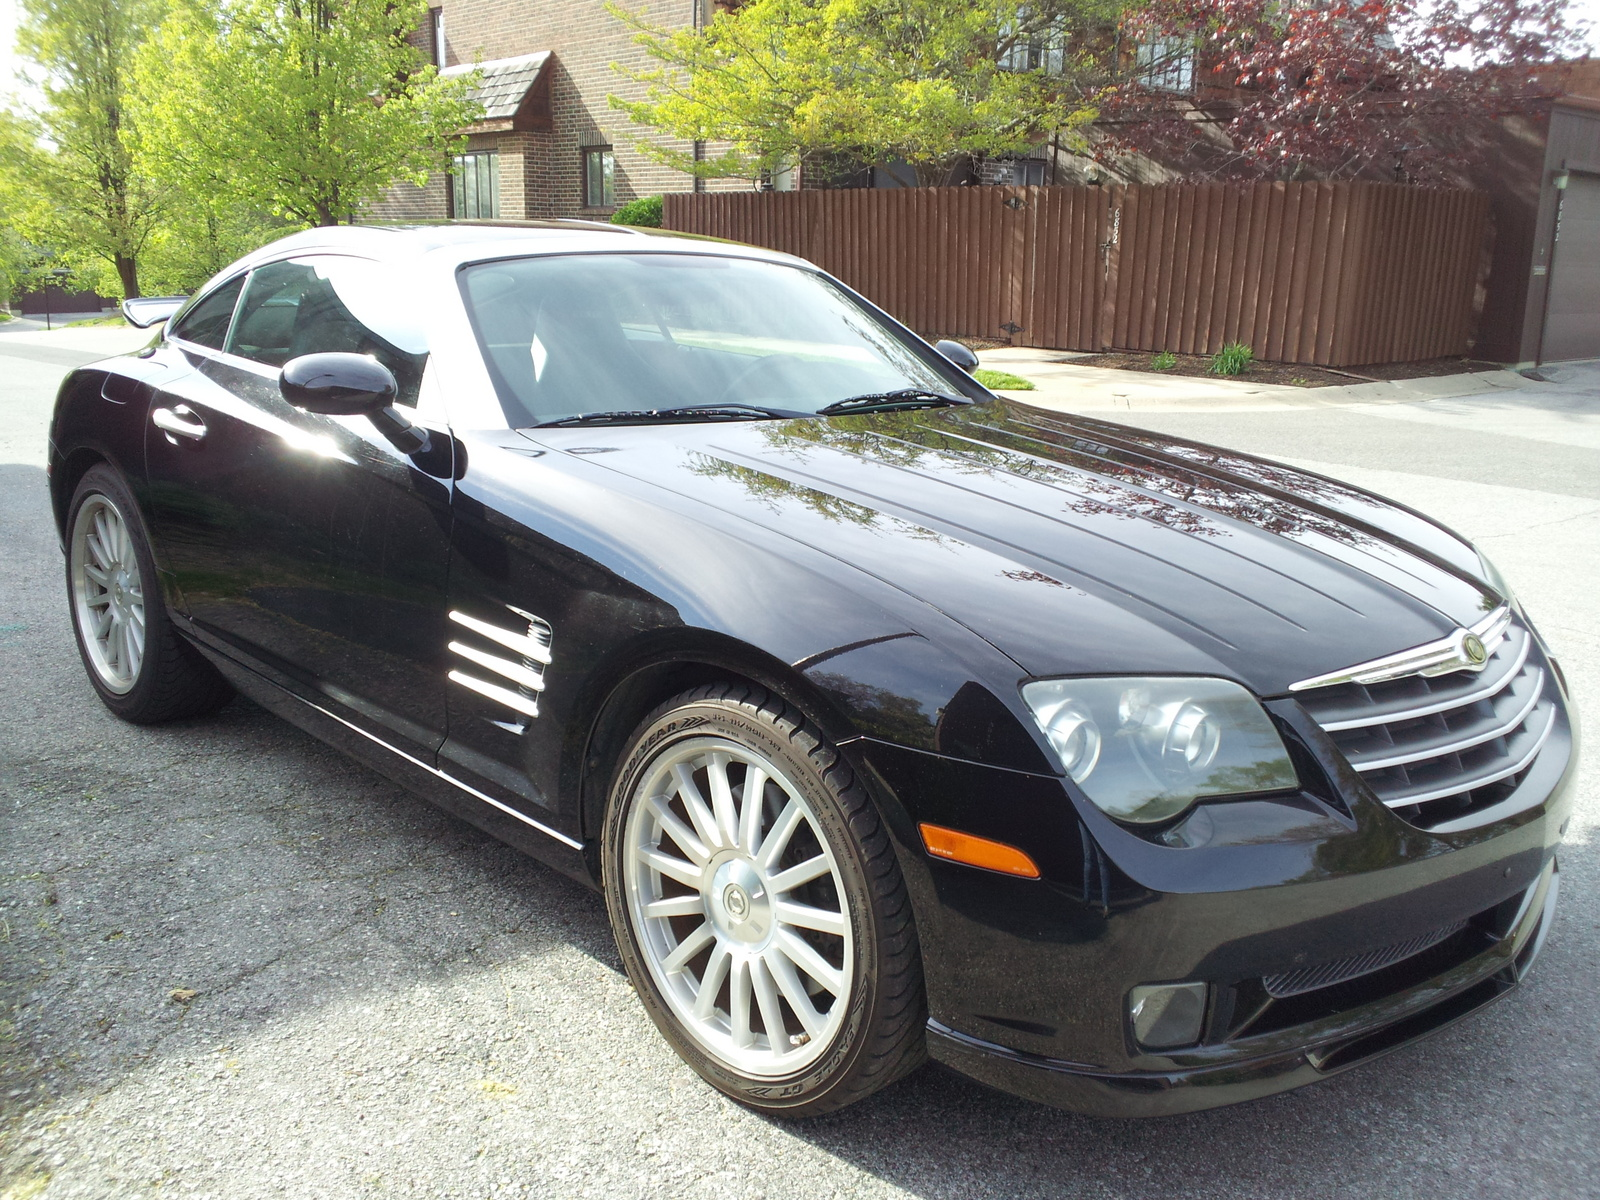 2006 Chrysler Crossfire SRT-6 - Overview - CarGurus